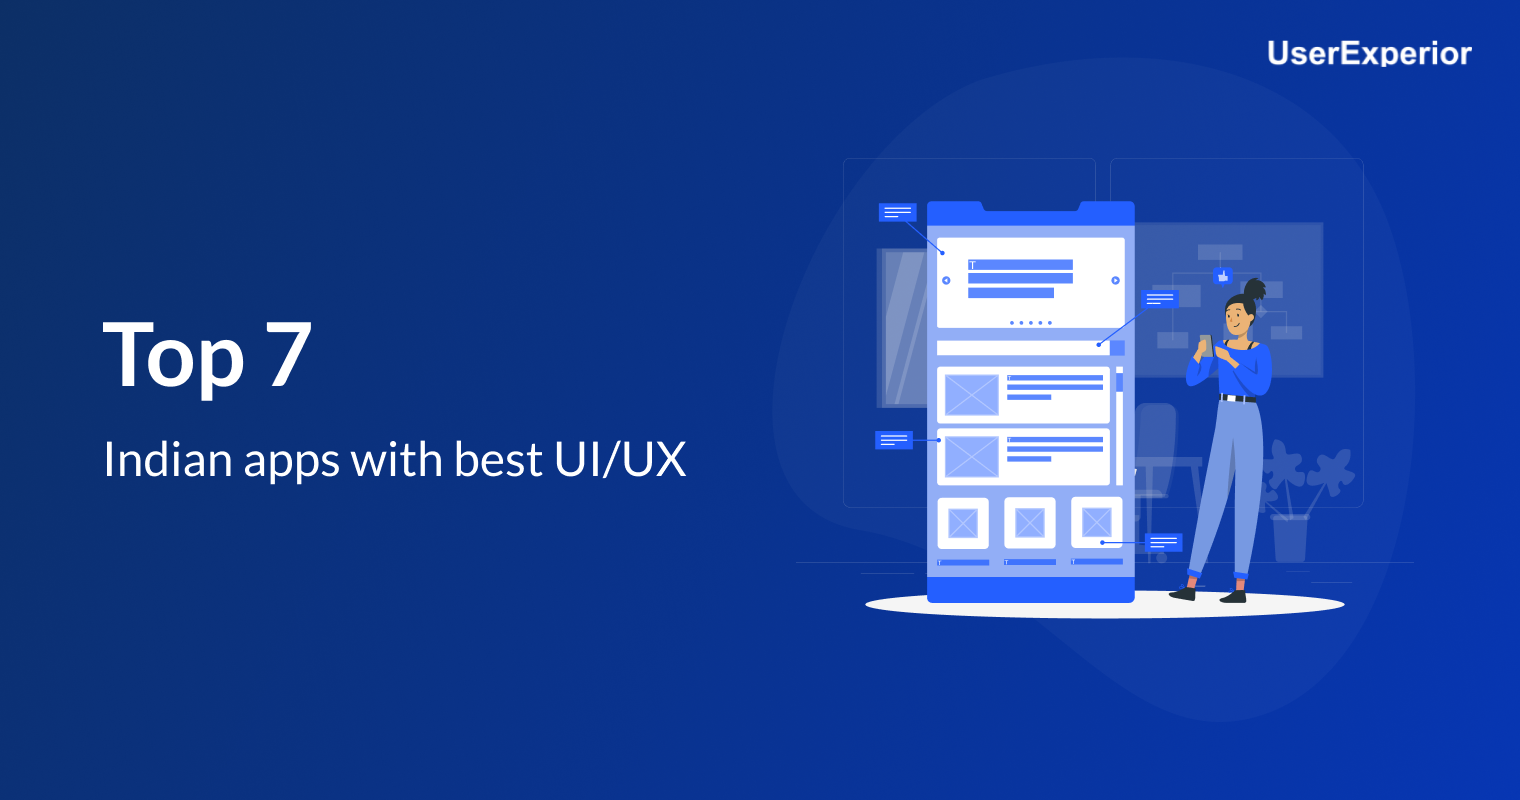 Top 7 Indian apps with best UI/UX